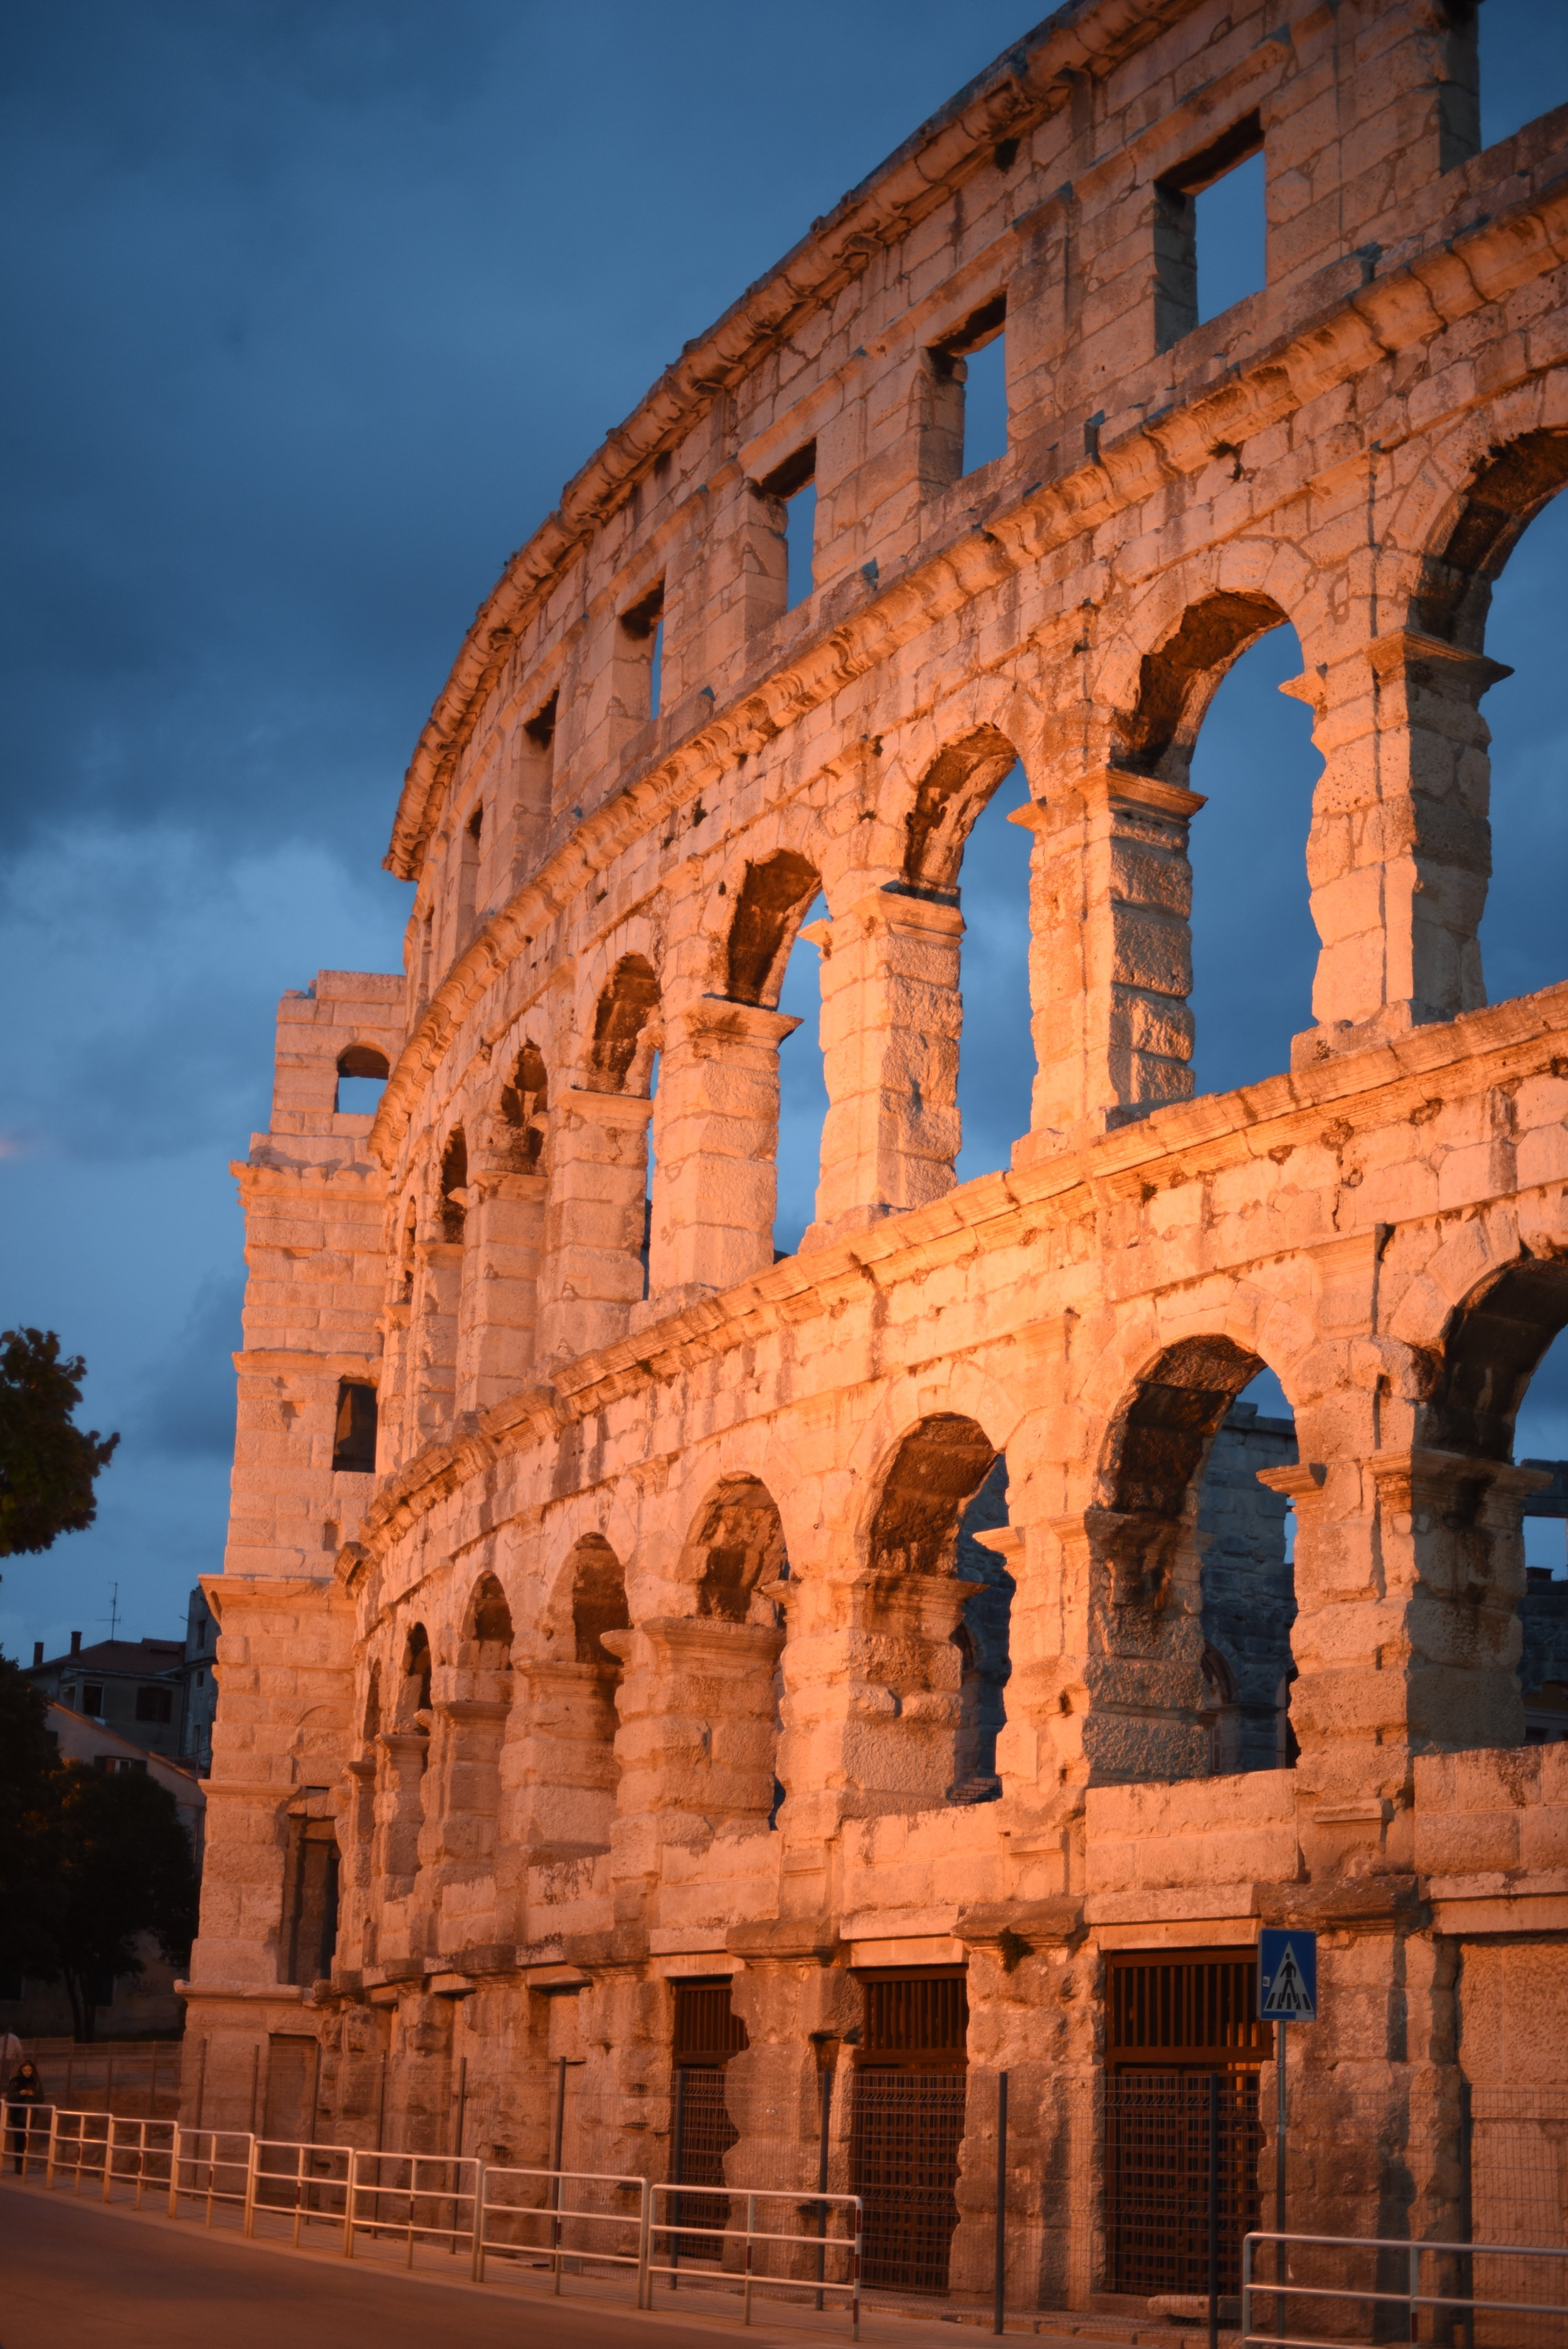 The Pula Arena illuminated in the evening.